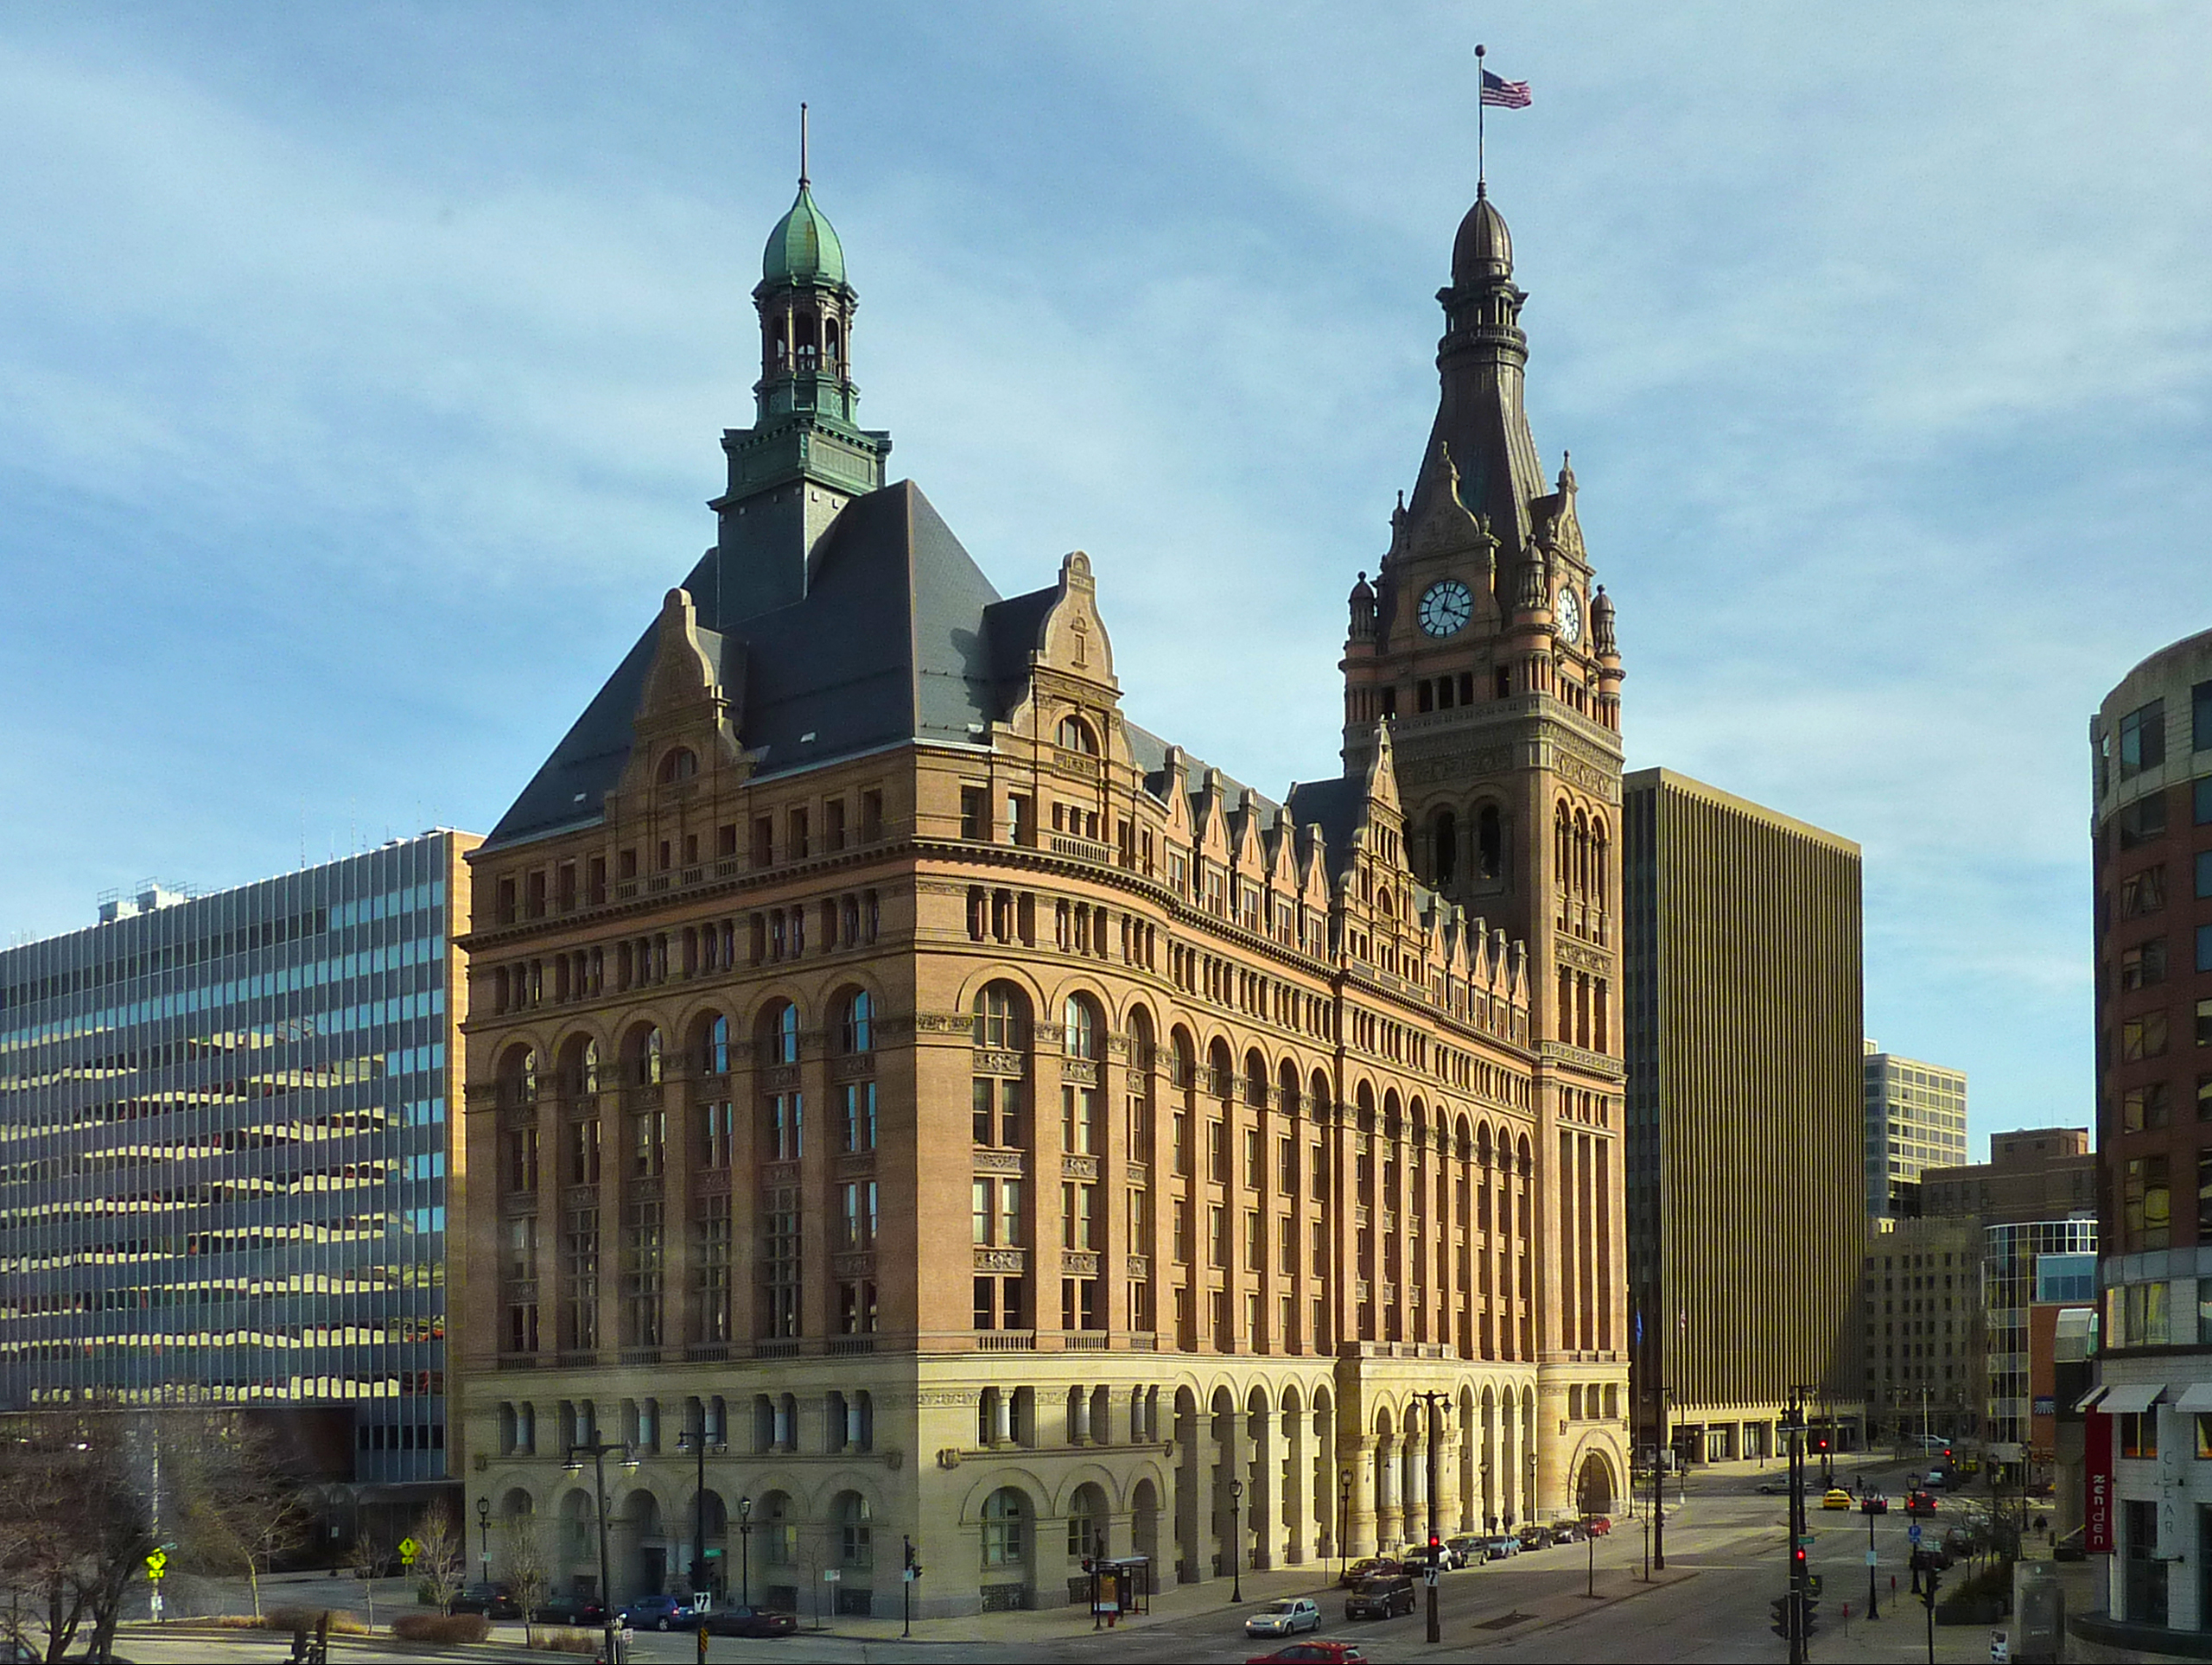 The beautiful Milwaukee City Hall was built in 1895 and remained the city's tallest building until 1973 when the First Wisconsin Building, now the U.S. Bank Building, was constructed.